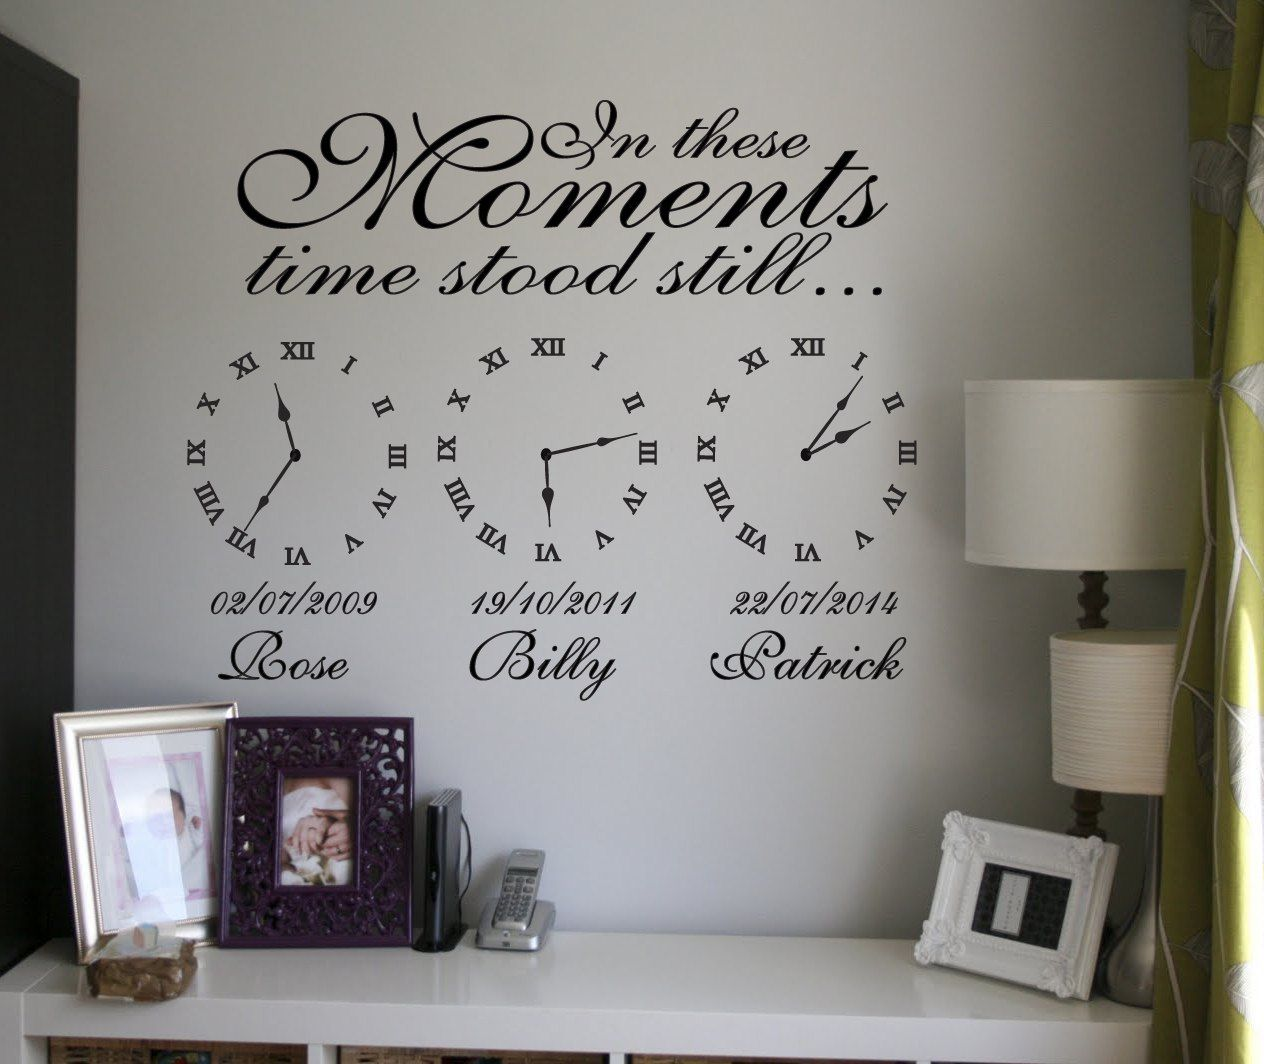 Time Stood Still Memory Clocks Date Of Birth Memory Clocks Time Stood Still Memory Wall Family Wall Decals